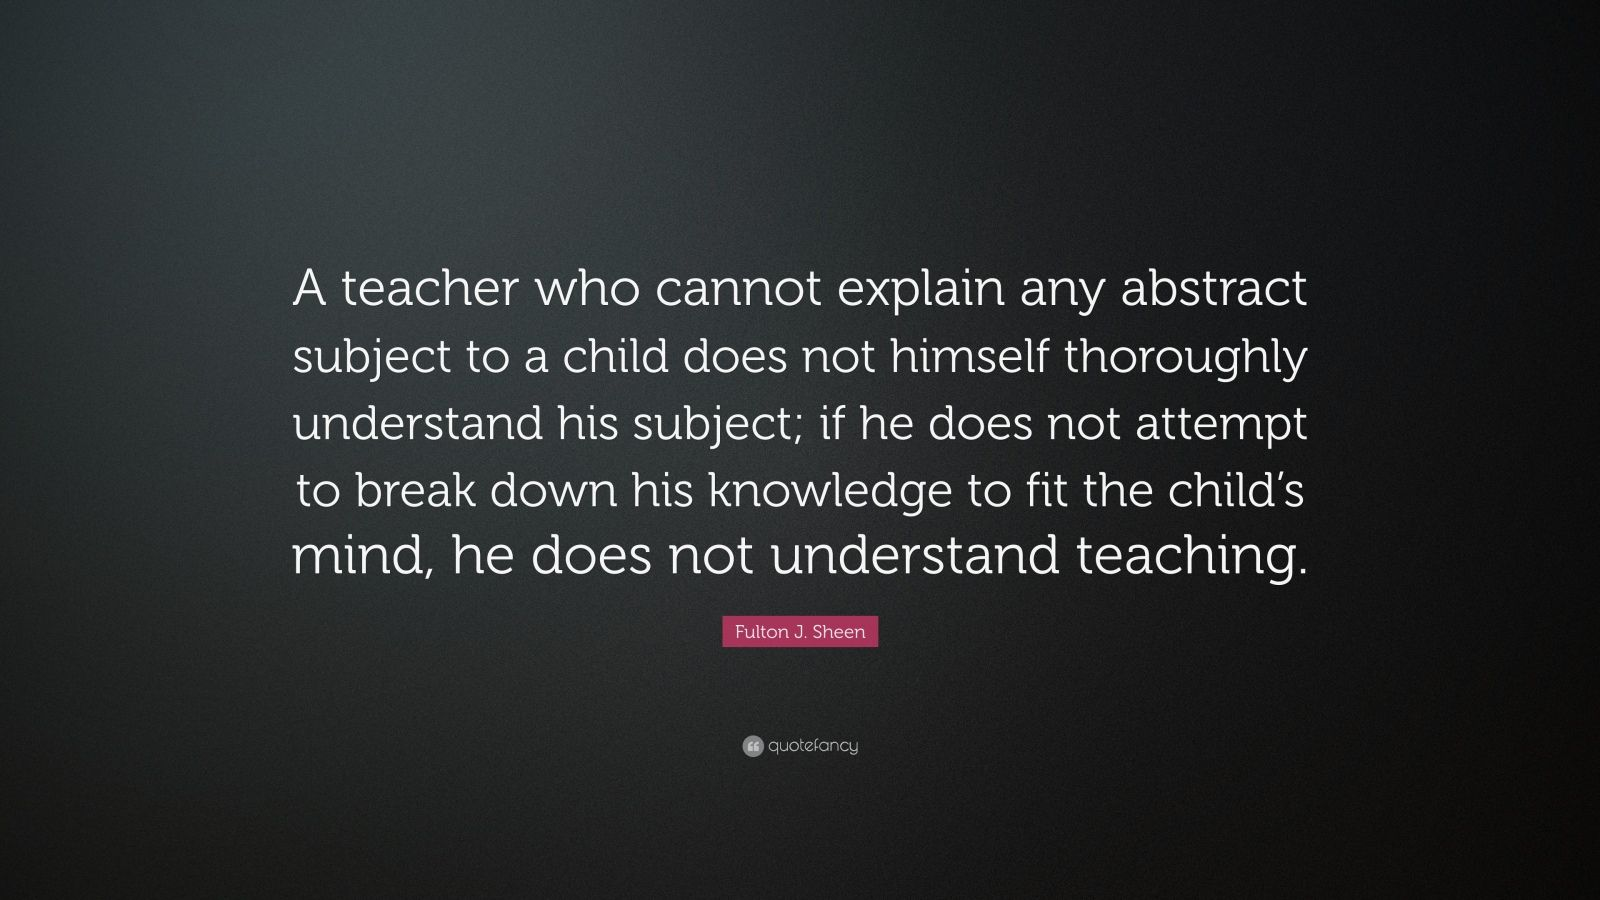 "Fulton J. Sheen Quote: ""A teacher who cannot explain any abstract subject to a child does not himself thoroughly understand his subject; if he does not attempt to break down his knowledge to fit the child's mind, he does not understand teaching."""